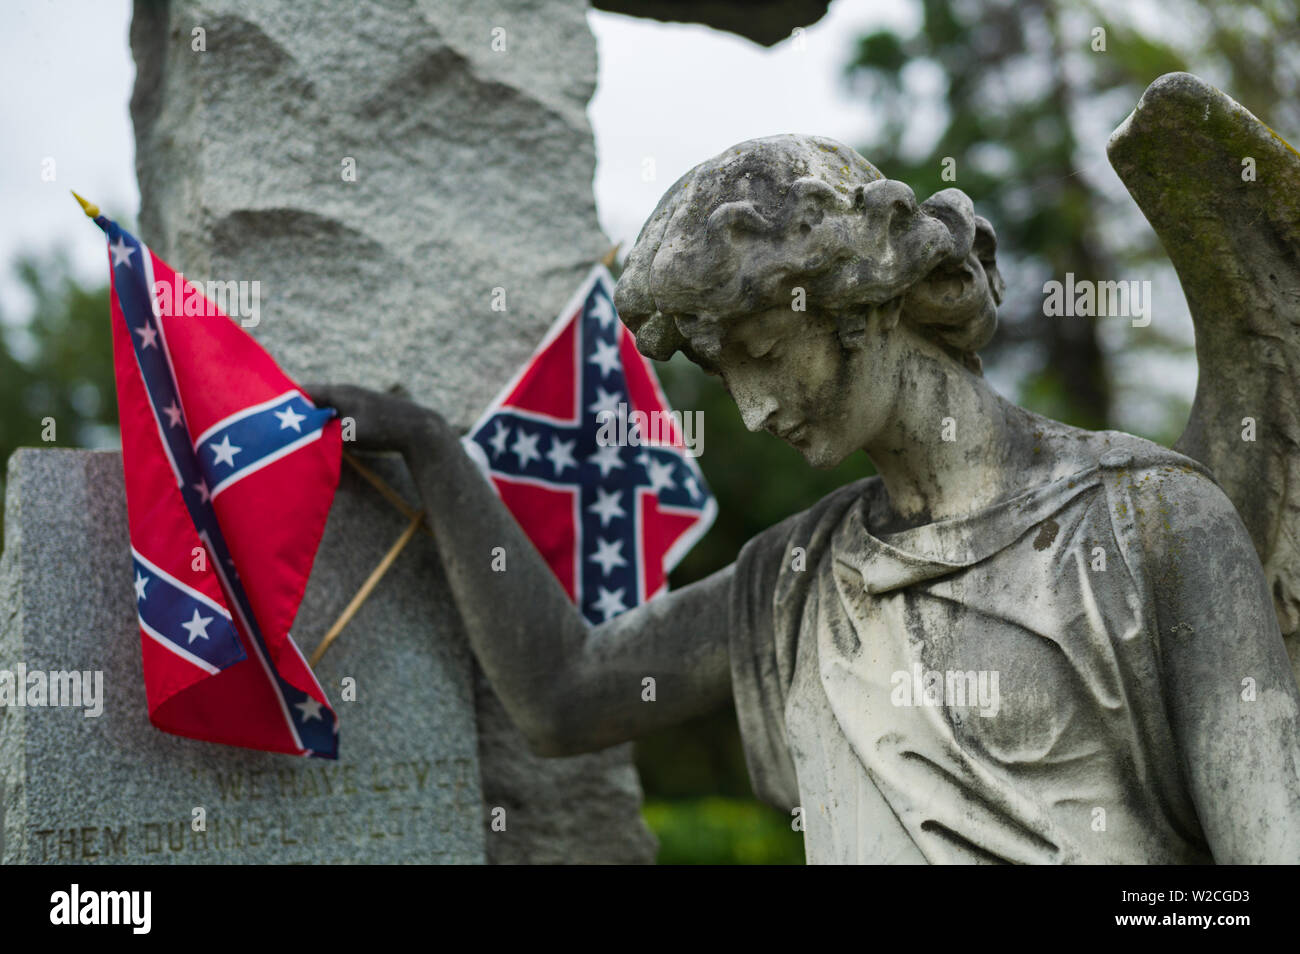 USA, Virginia, Richmond, Hollywood Cemetery, graves of Confederate soldiers - Stock Image